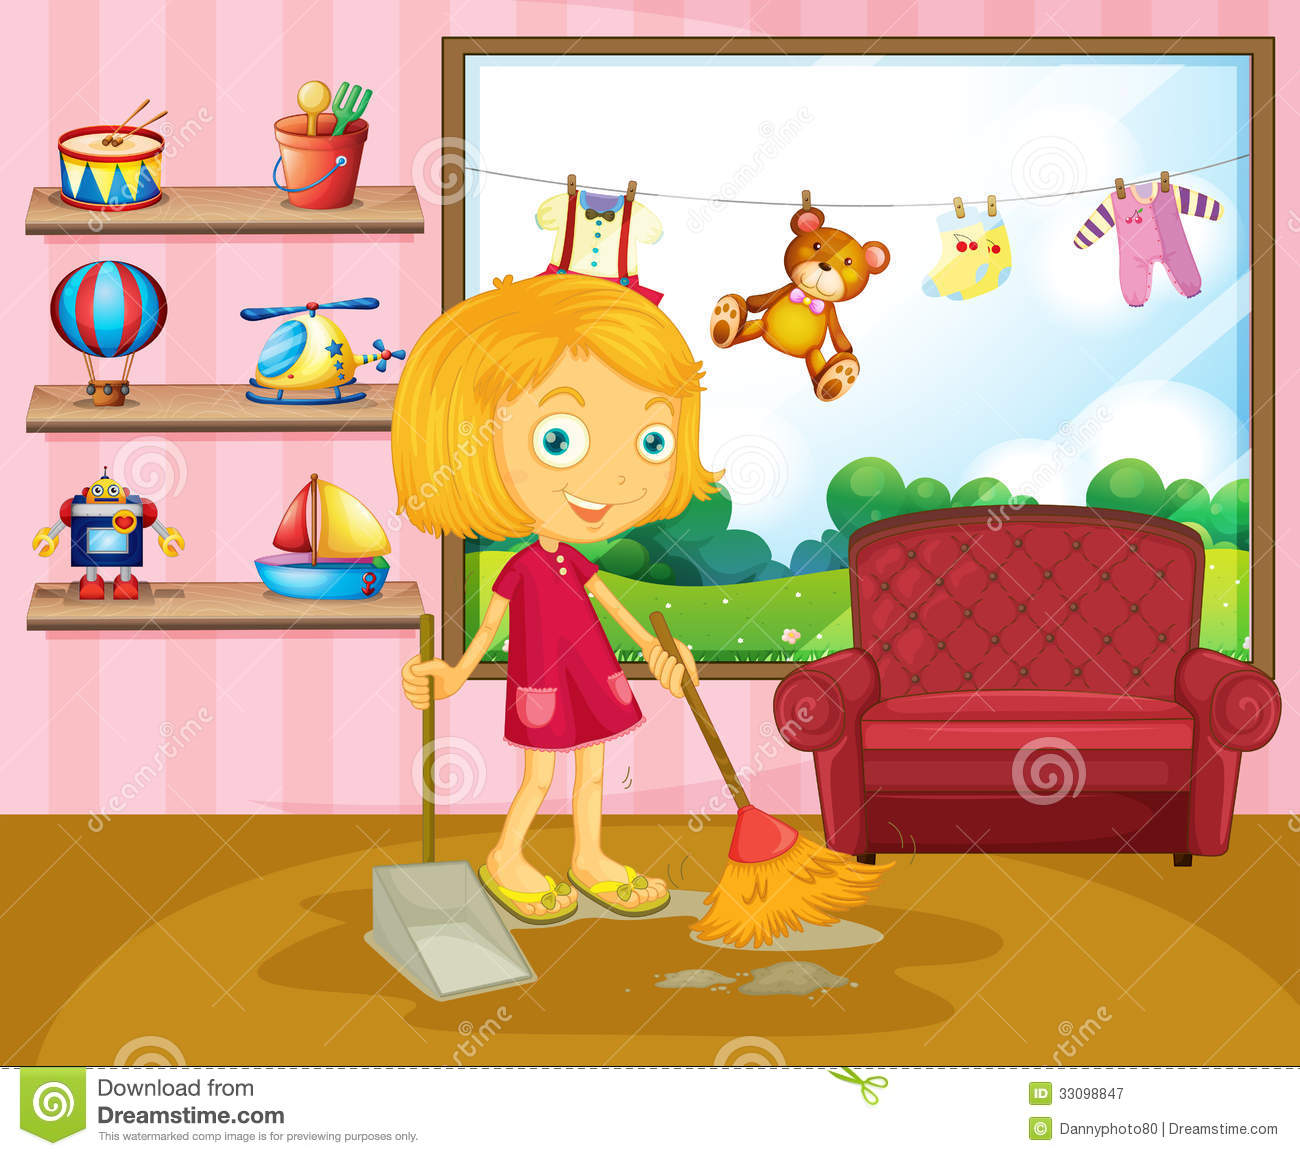 A Girl Sweeping Inside The House Royalty Free Stock Photography  Image 33098847